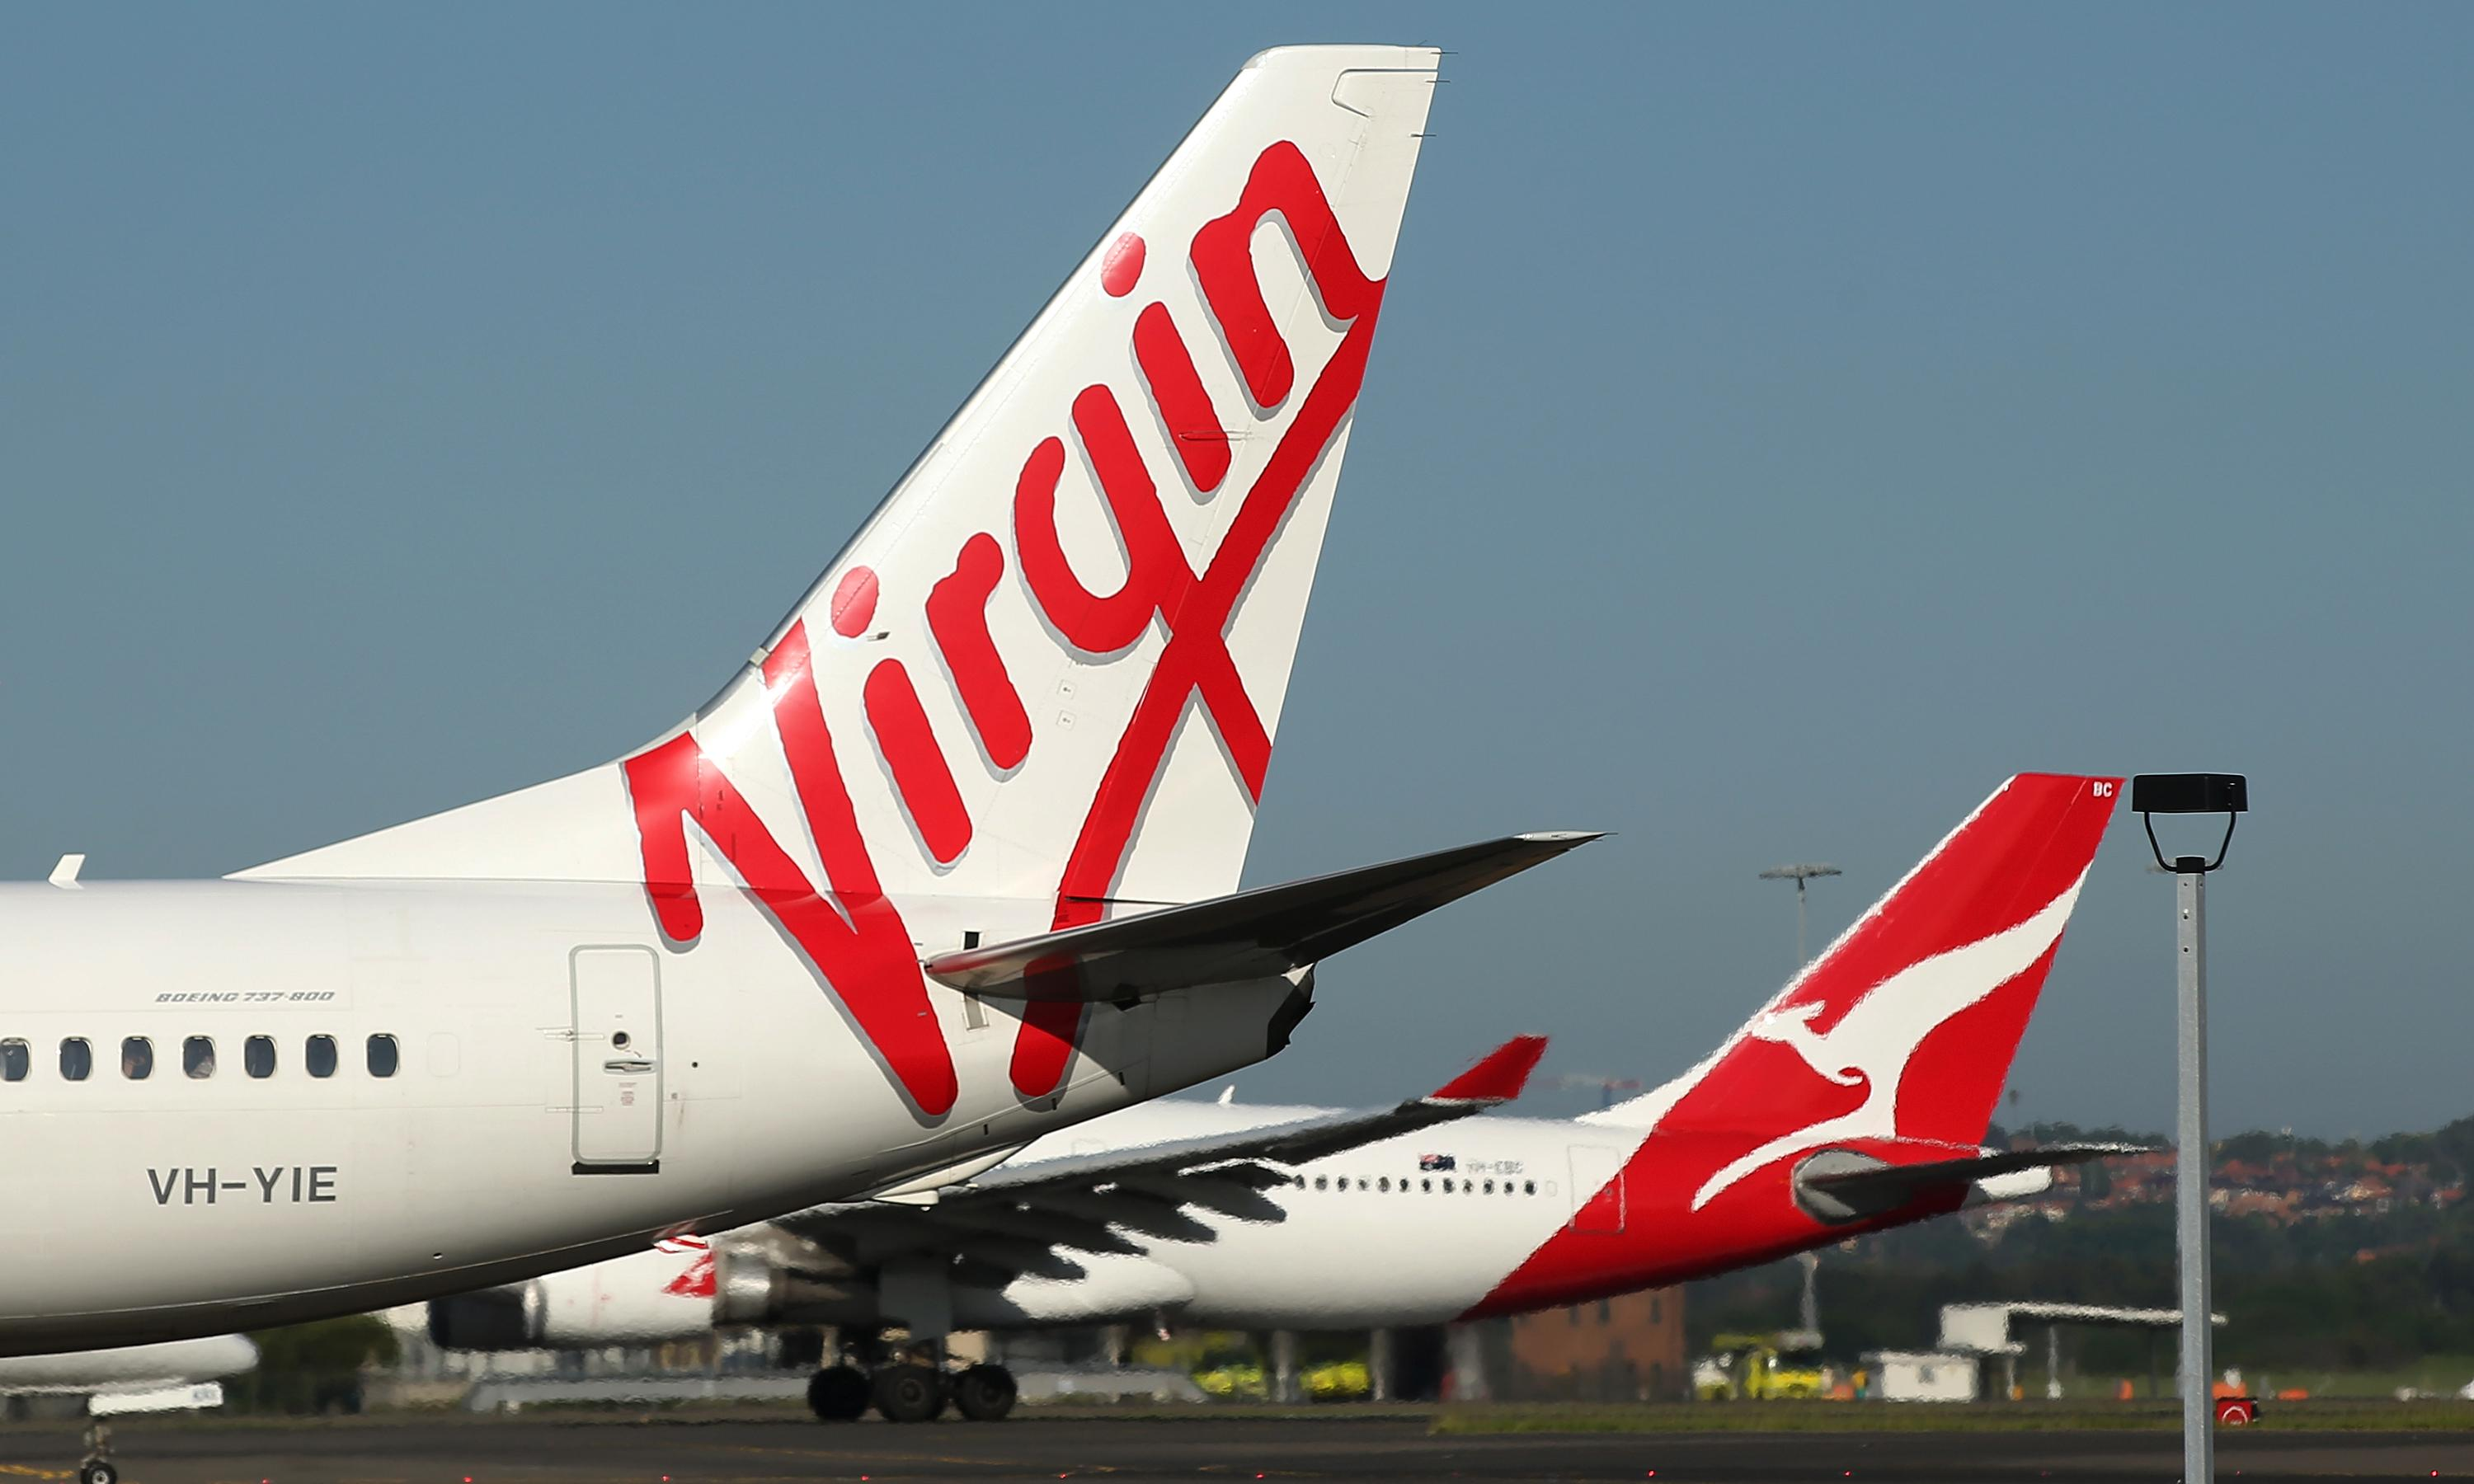 Virgin Australia engineer sacked for alleged misconduct after raising safety concerns